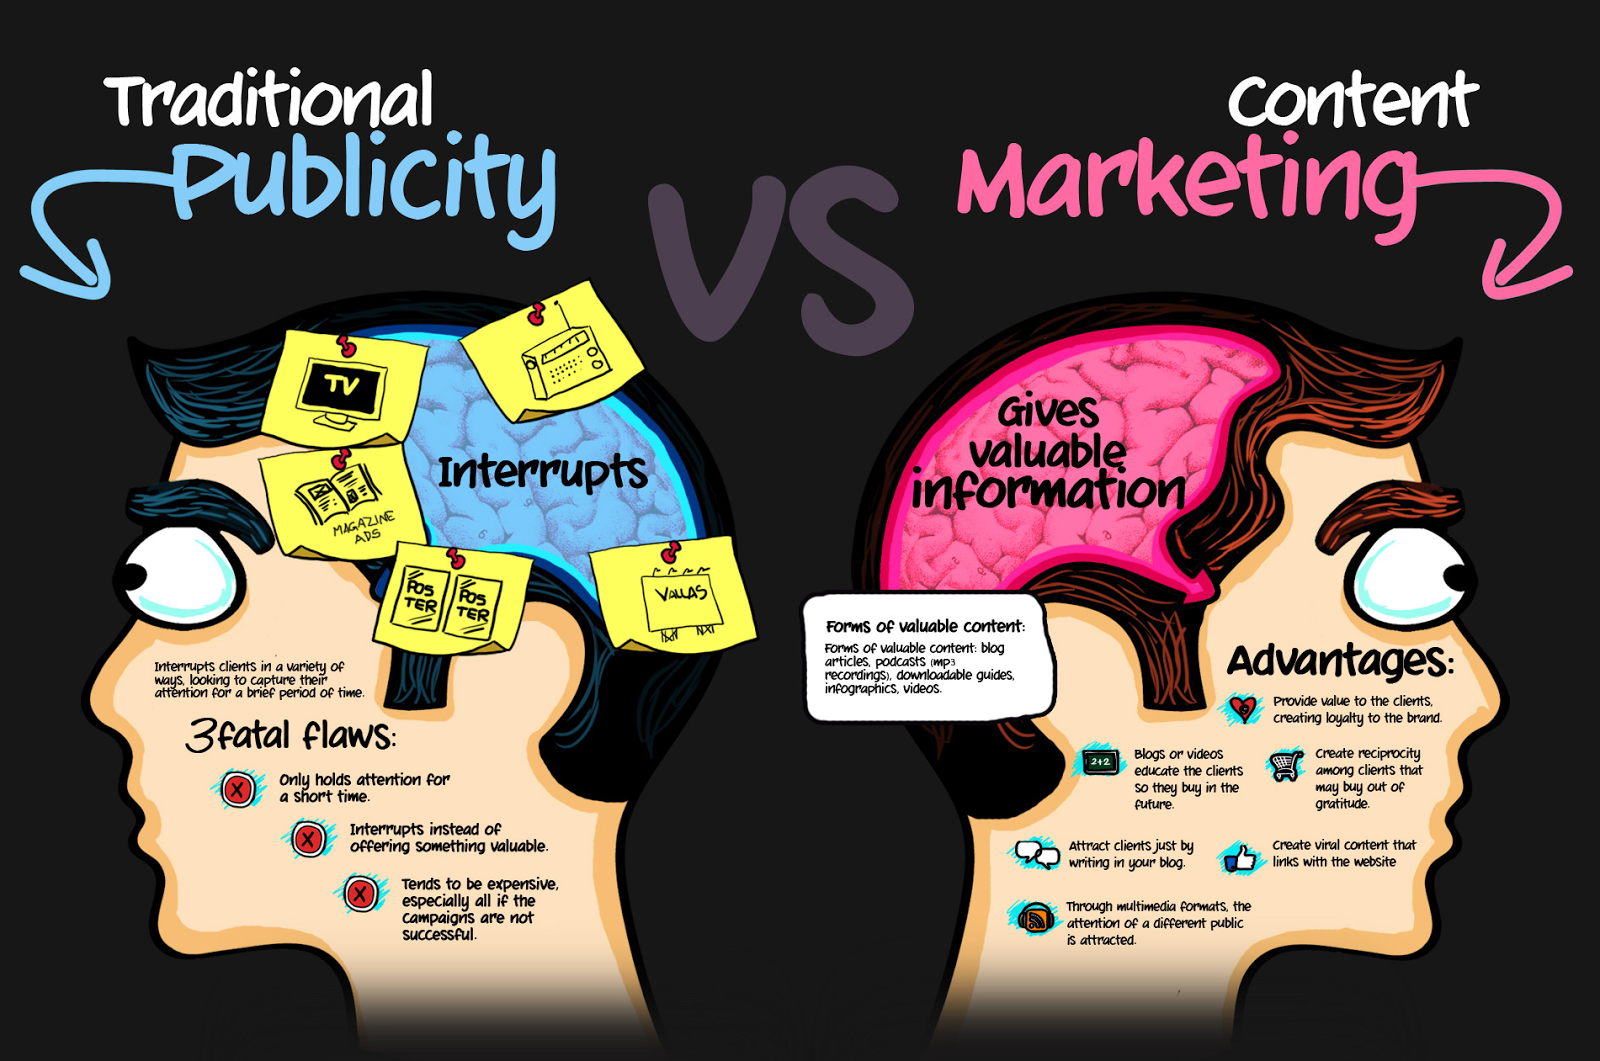 content marketing - Image